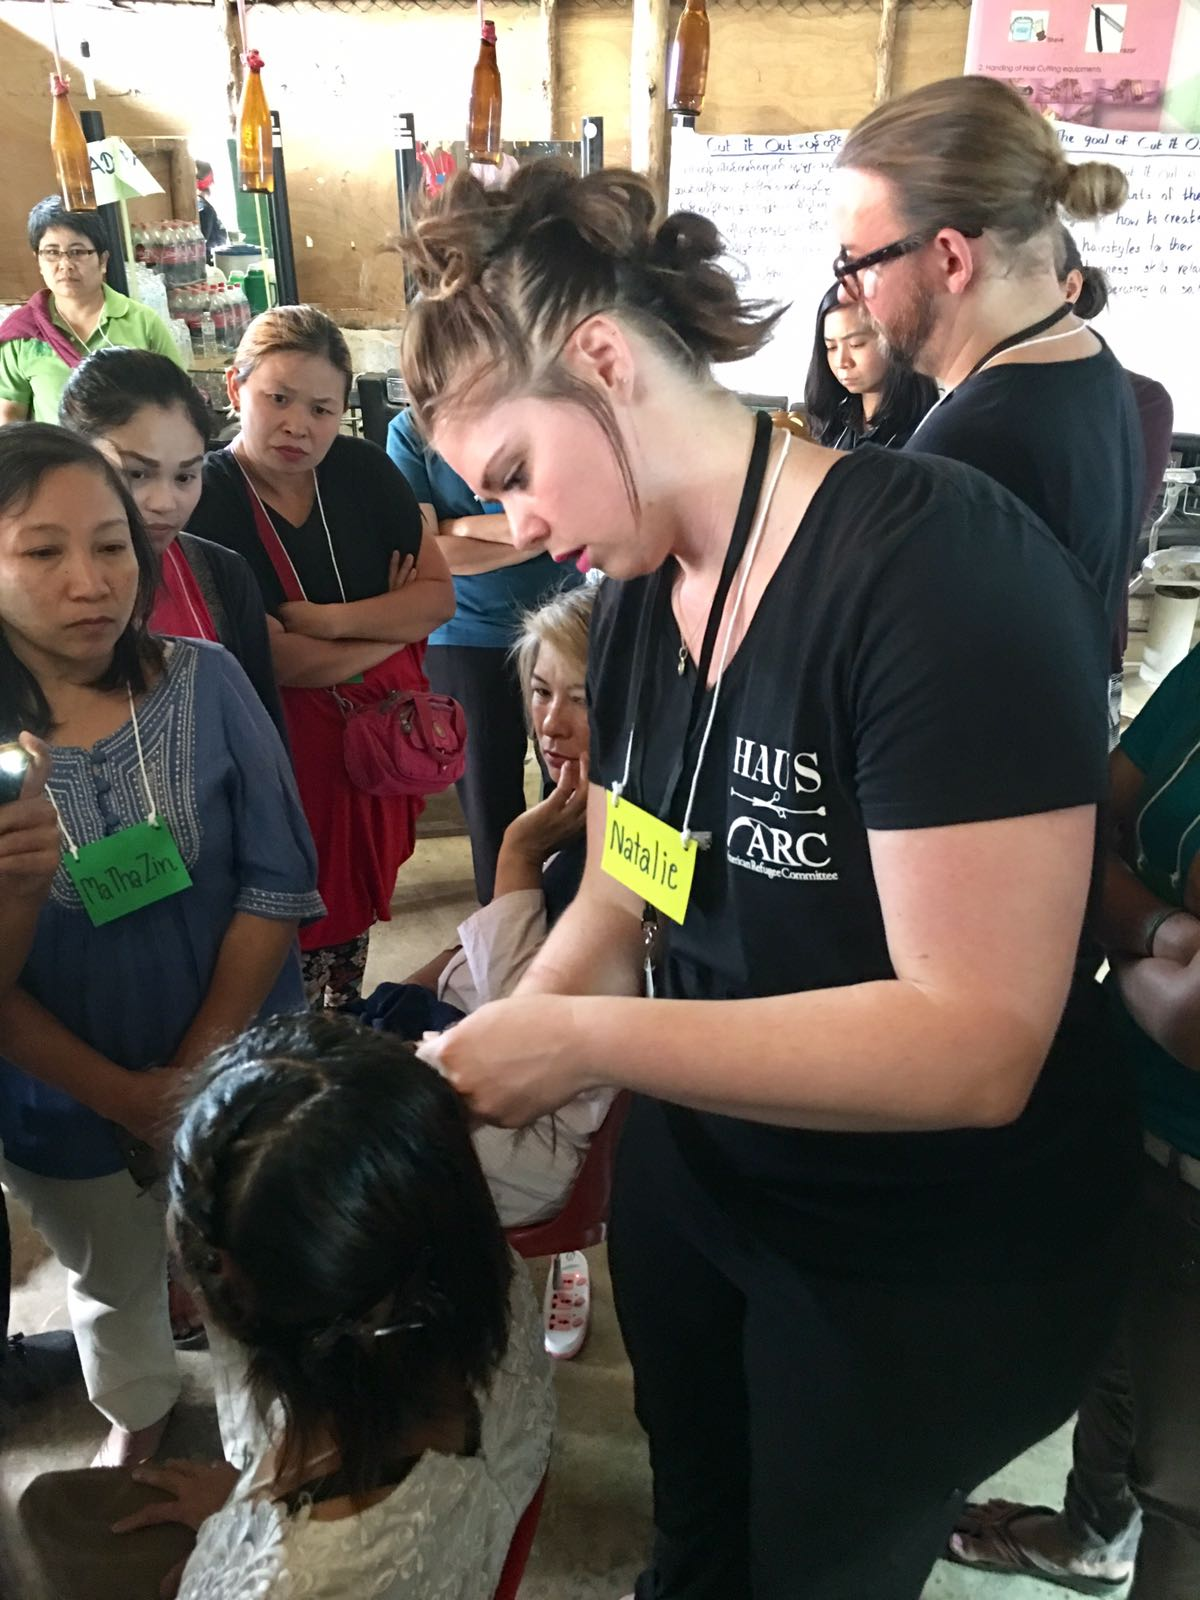 Natalie Hansen from HAUS Salon demonstrates a flat 2 strand twist that will help stylists add curl to their clients' hair in this climate. This is a technique we ourselves just learned in Minneapolis from texture expert Reese!